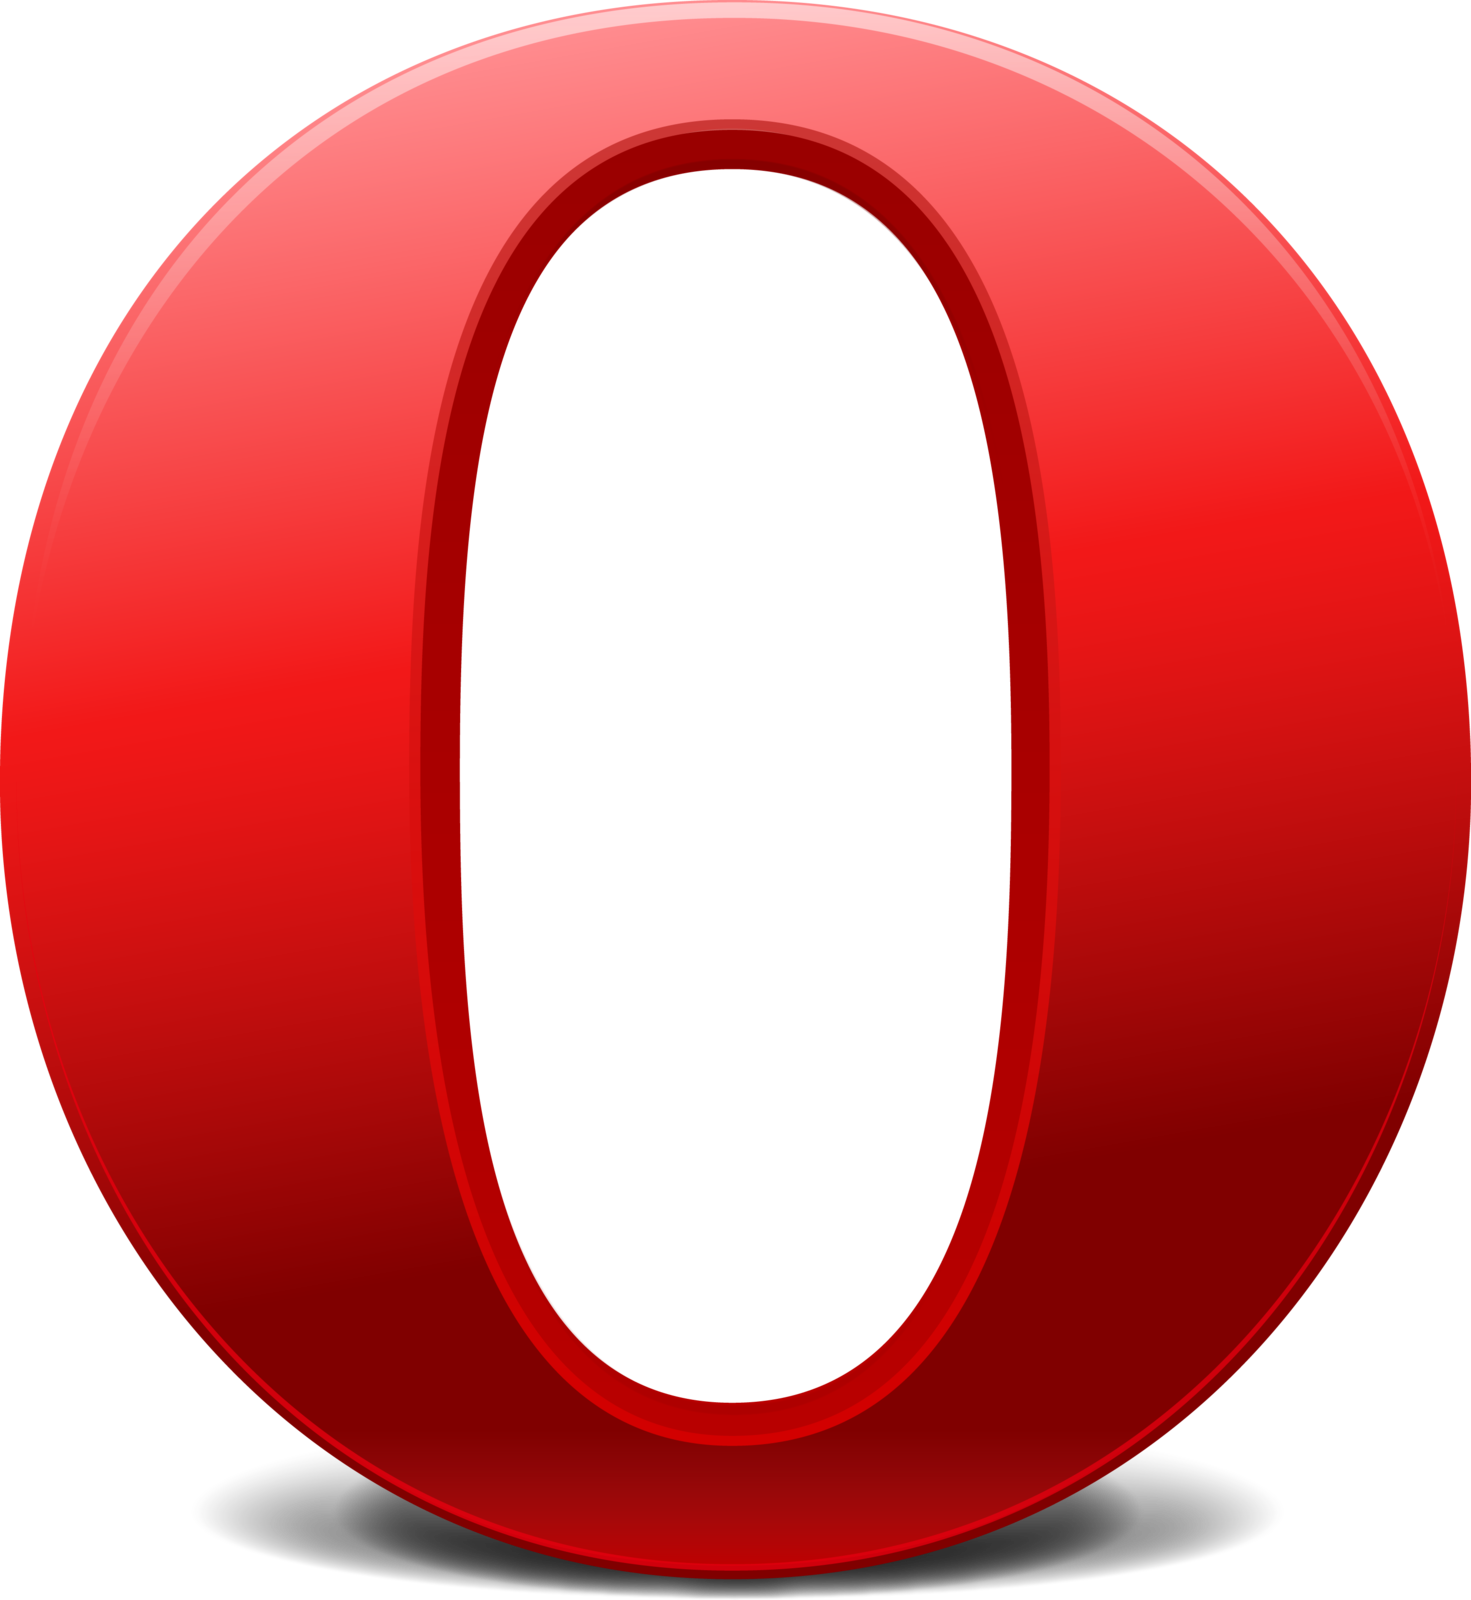 File:Opera browser logo 2013.